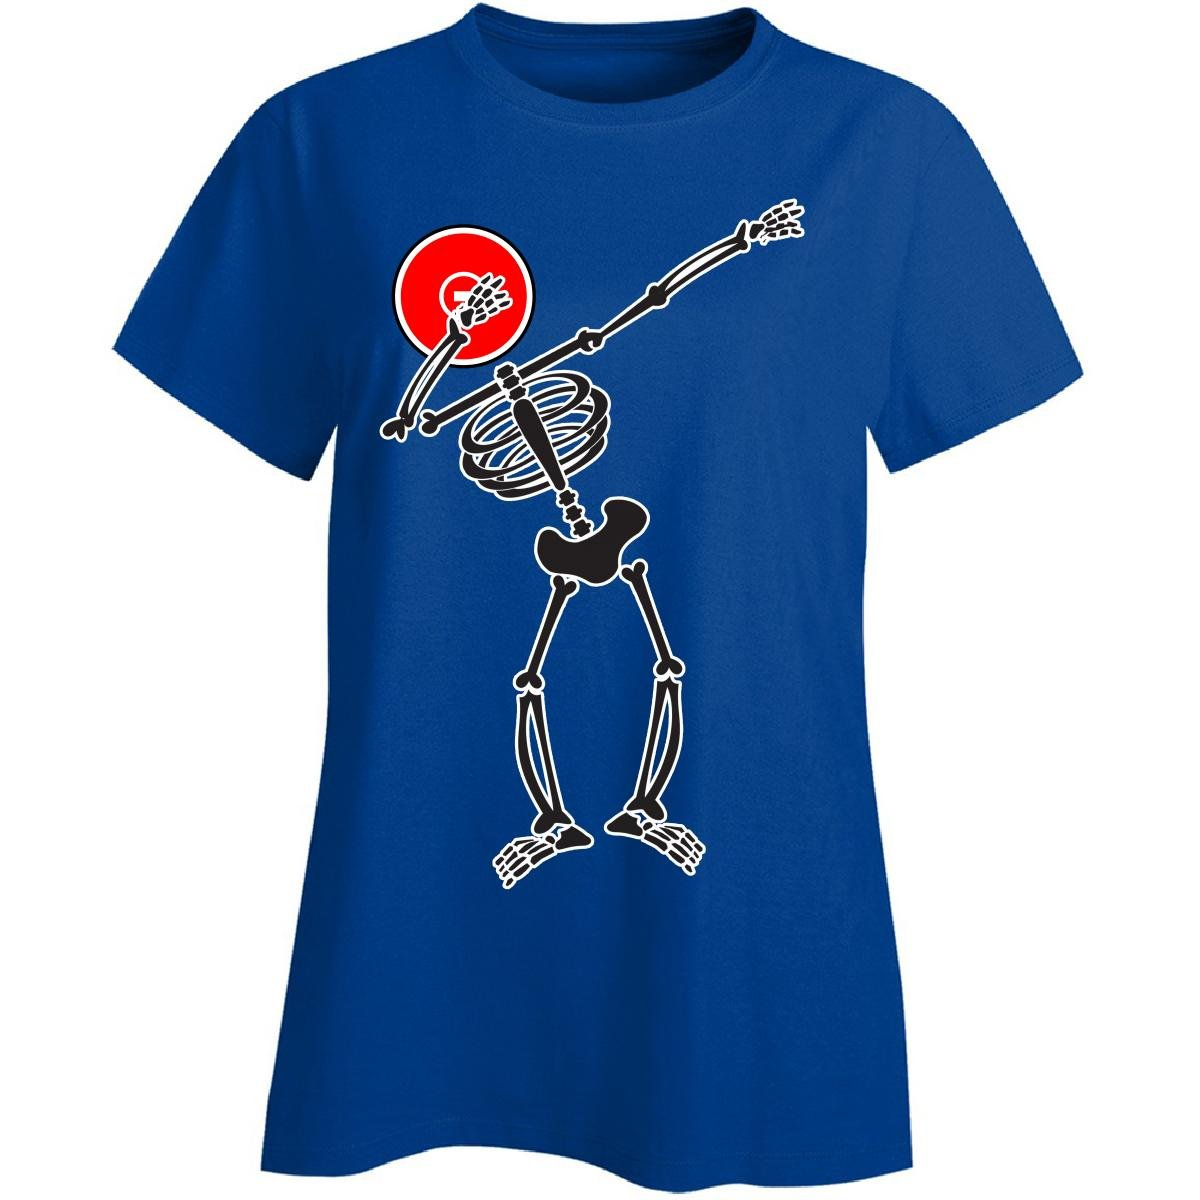 Dabbing Skeleton With Wrestling Mat Head - Ladies T-shirt Ladies Xl Royal by Eternally Gifted